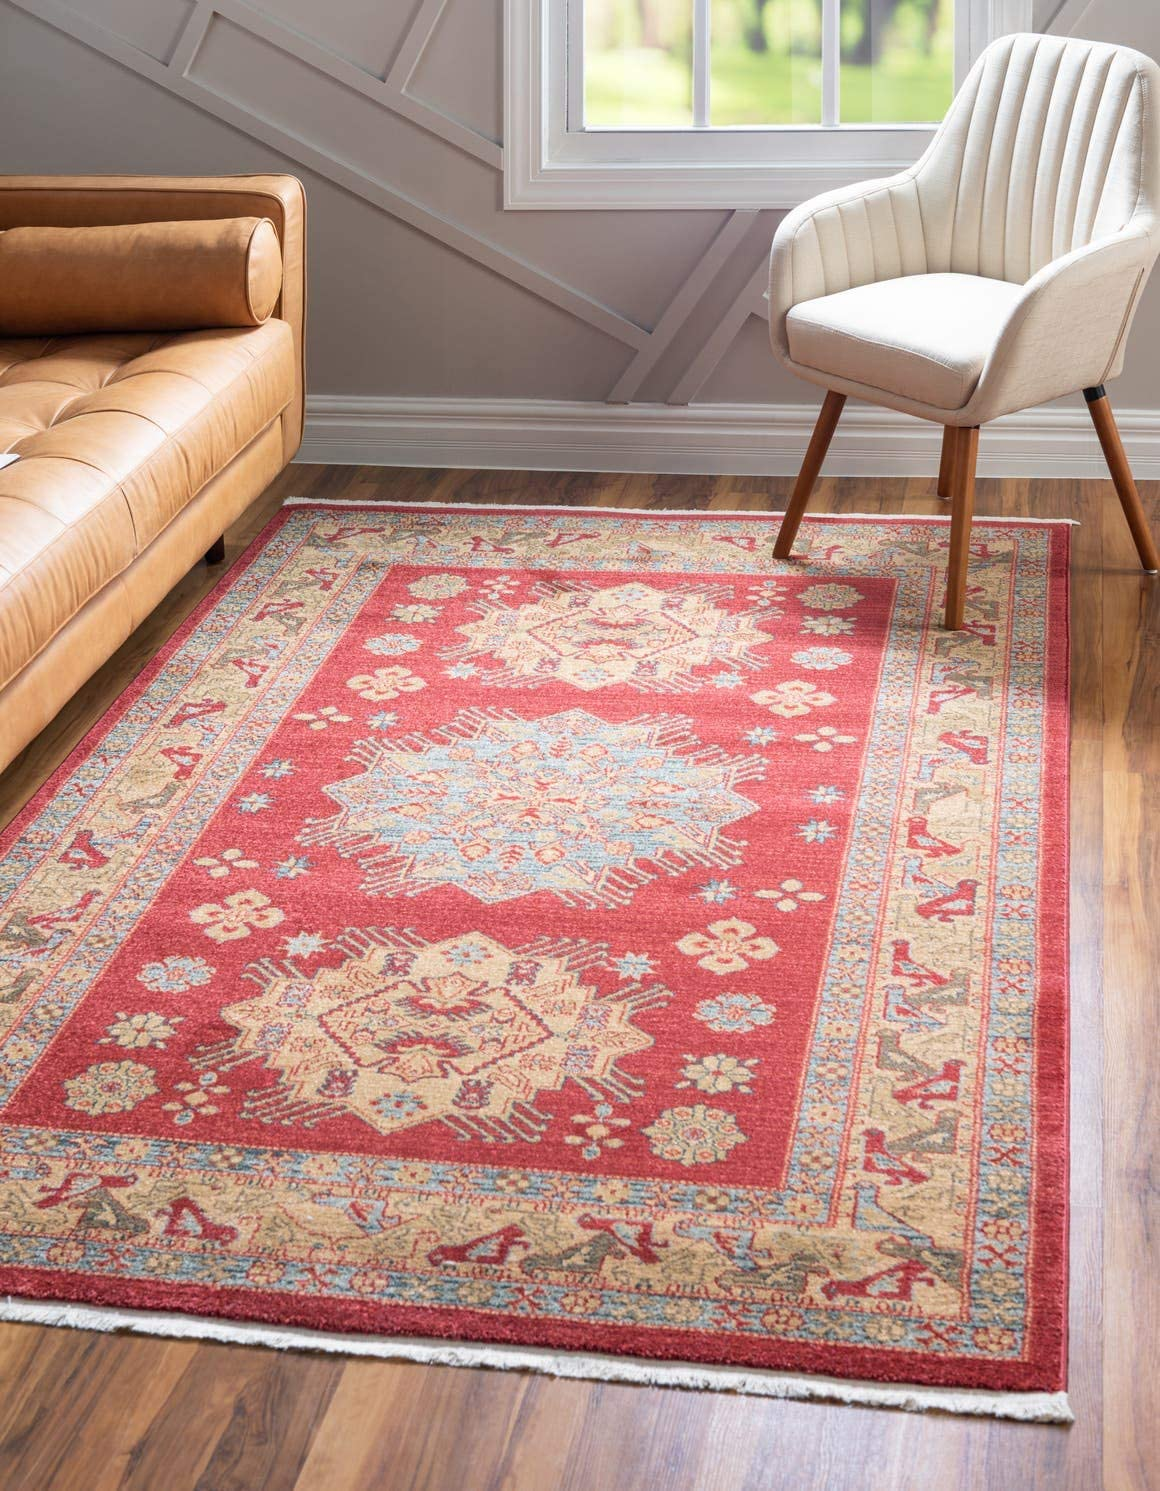 Unique Loom Sahand Collection Traditional Geometric Classic Red Area Rug 2 2 x 3 0